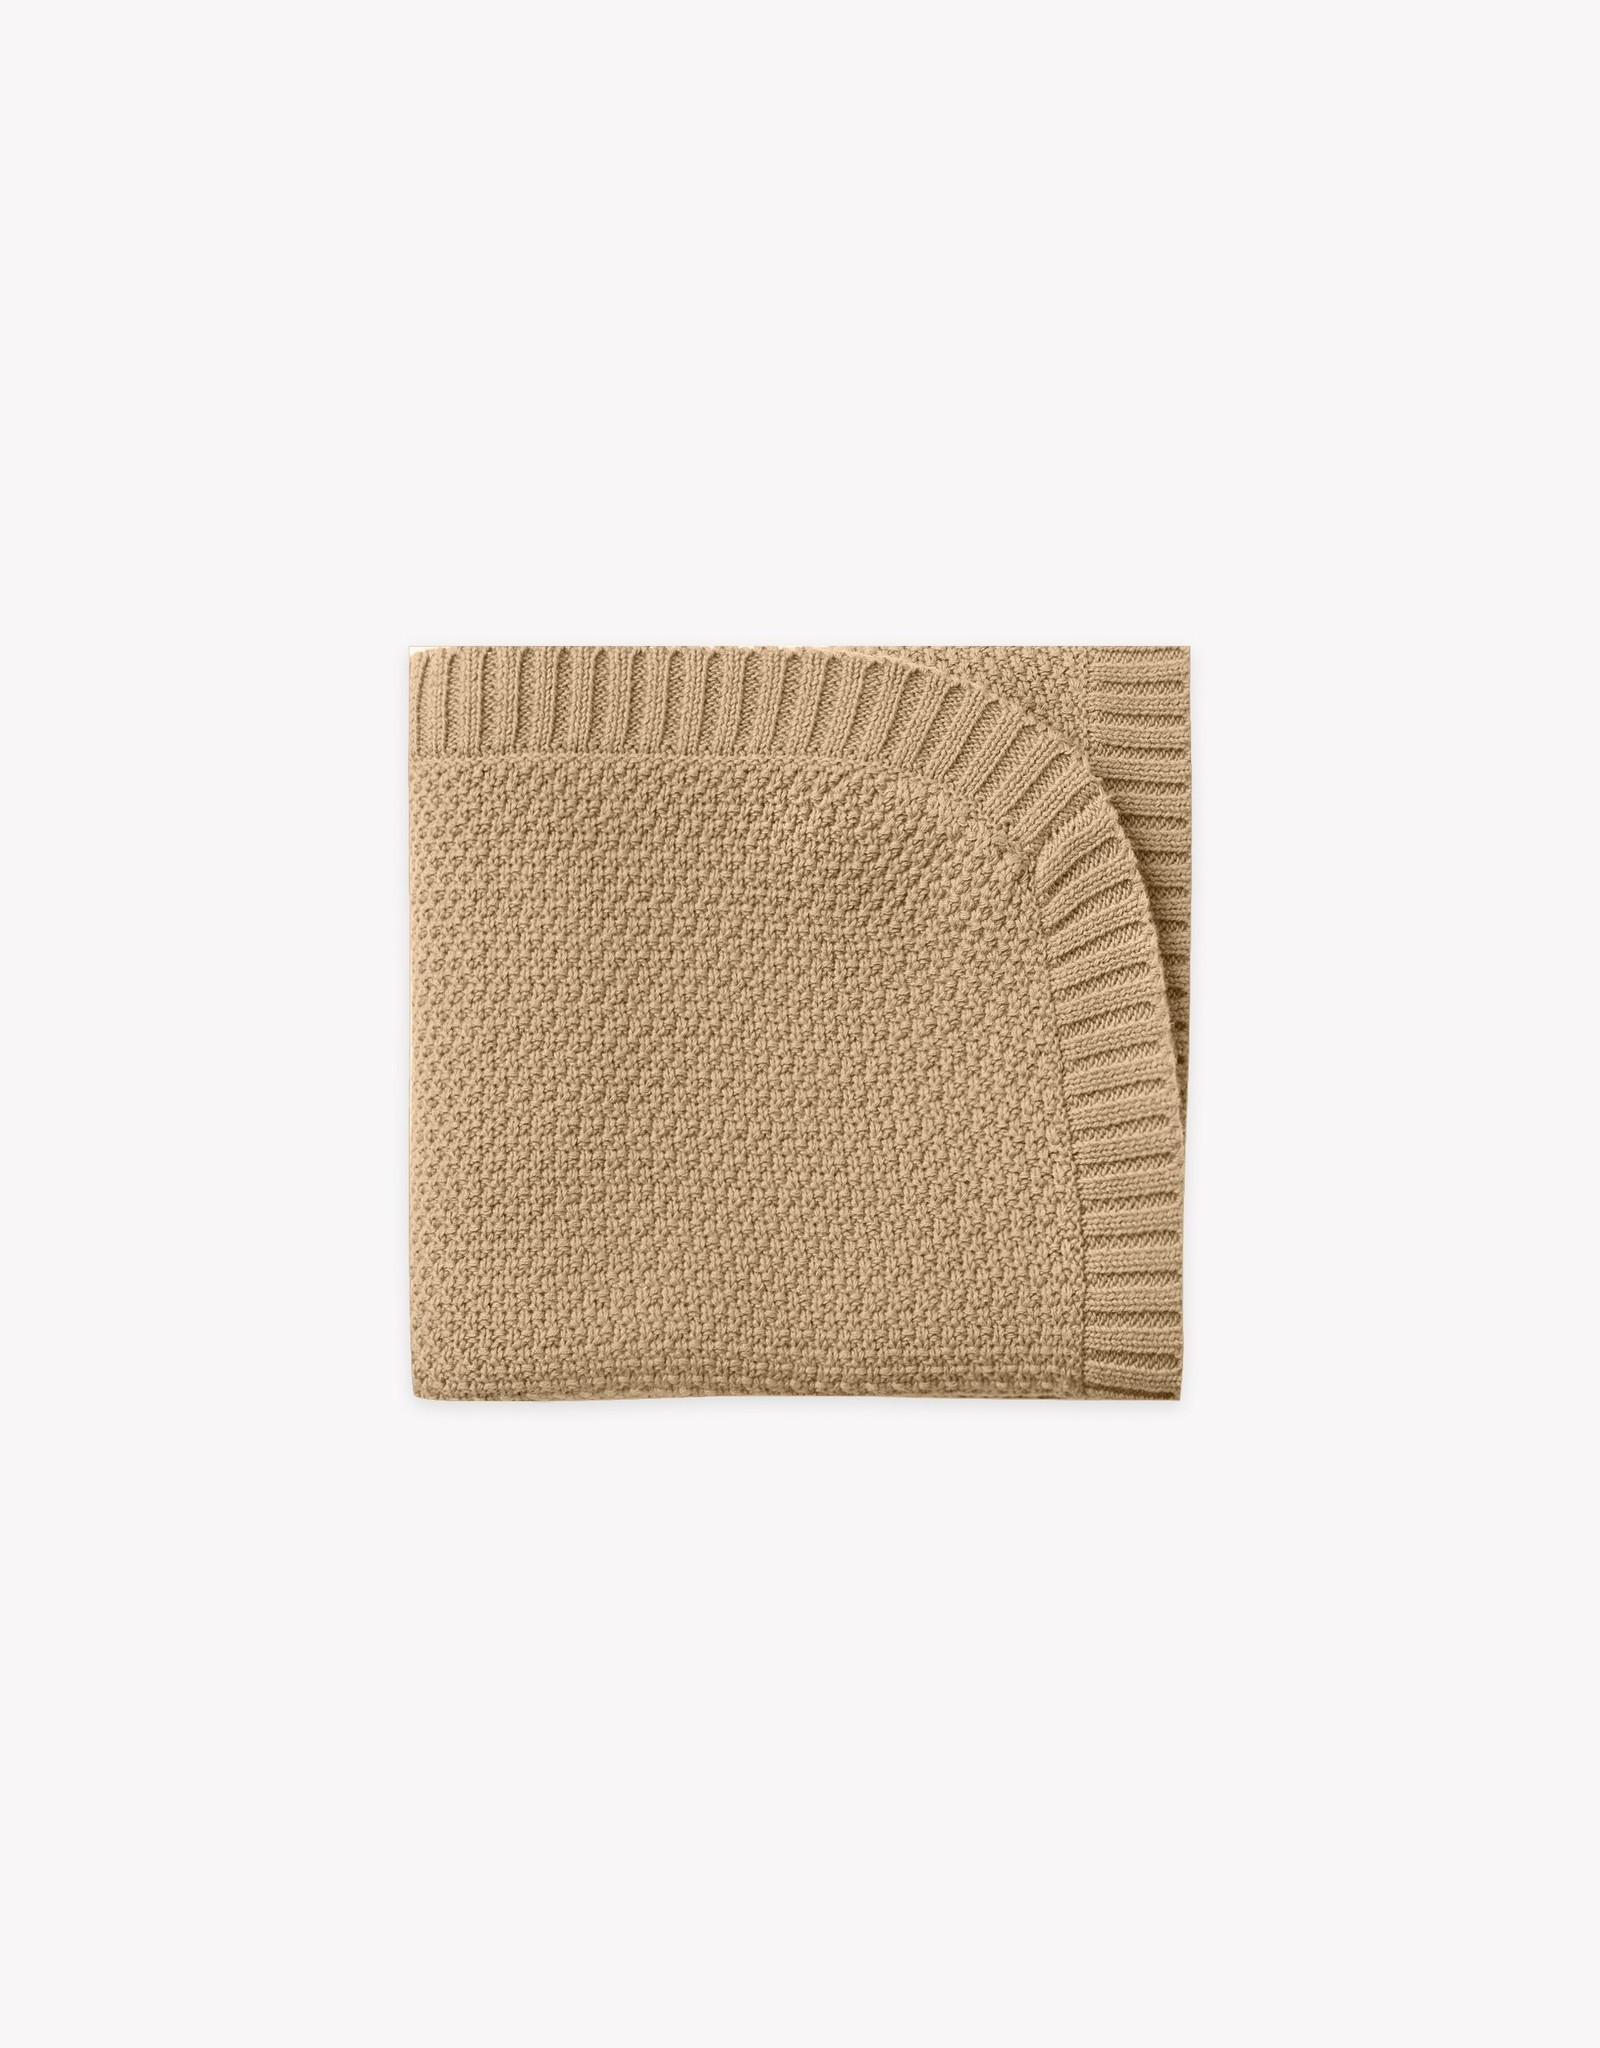 Quincy Mae Chunky Knit Baby Blanket